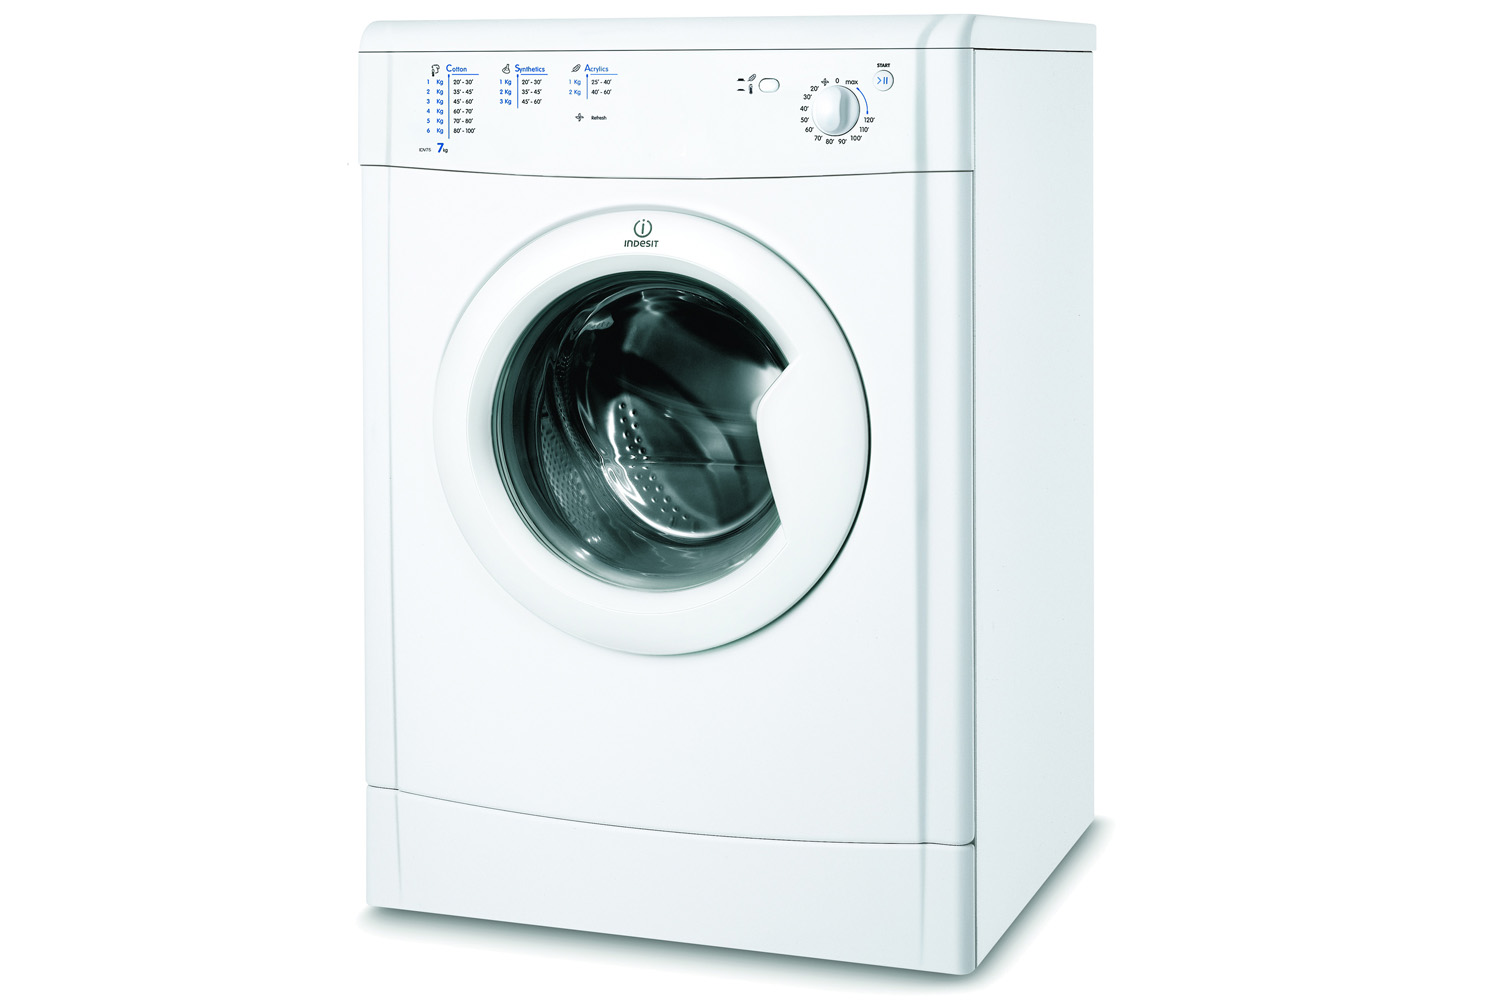 Indesit 8kg Eco Washing Machine Iwc81482 Ireland Printed Circuit Board Repairs For Tumble Dryers Aeg Electrolux Ecotime 7kg Vented Dryer Idv75